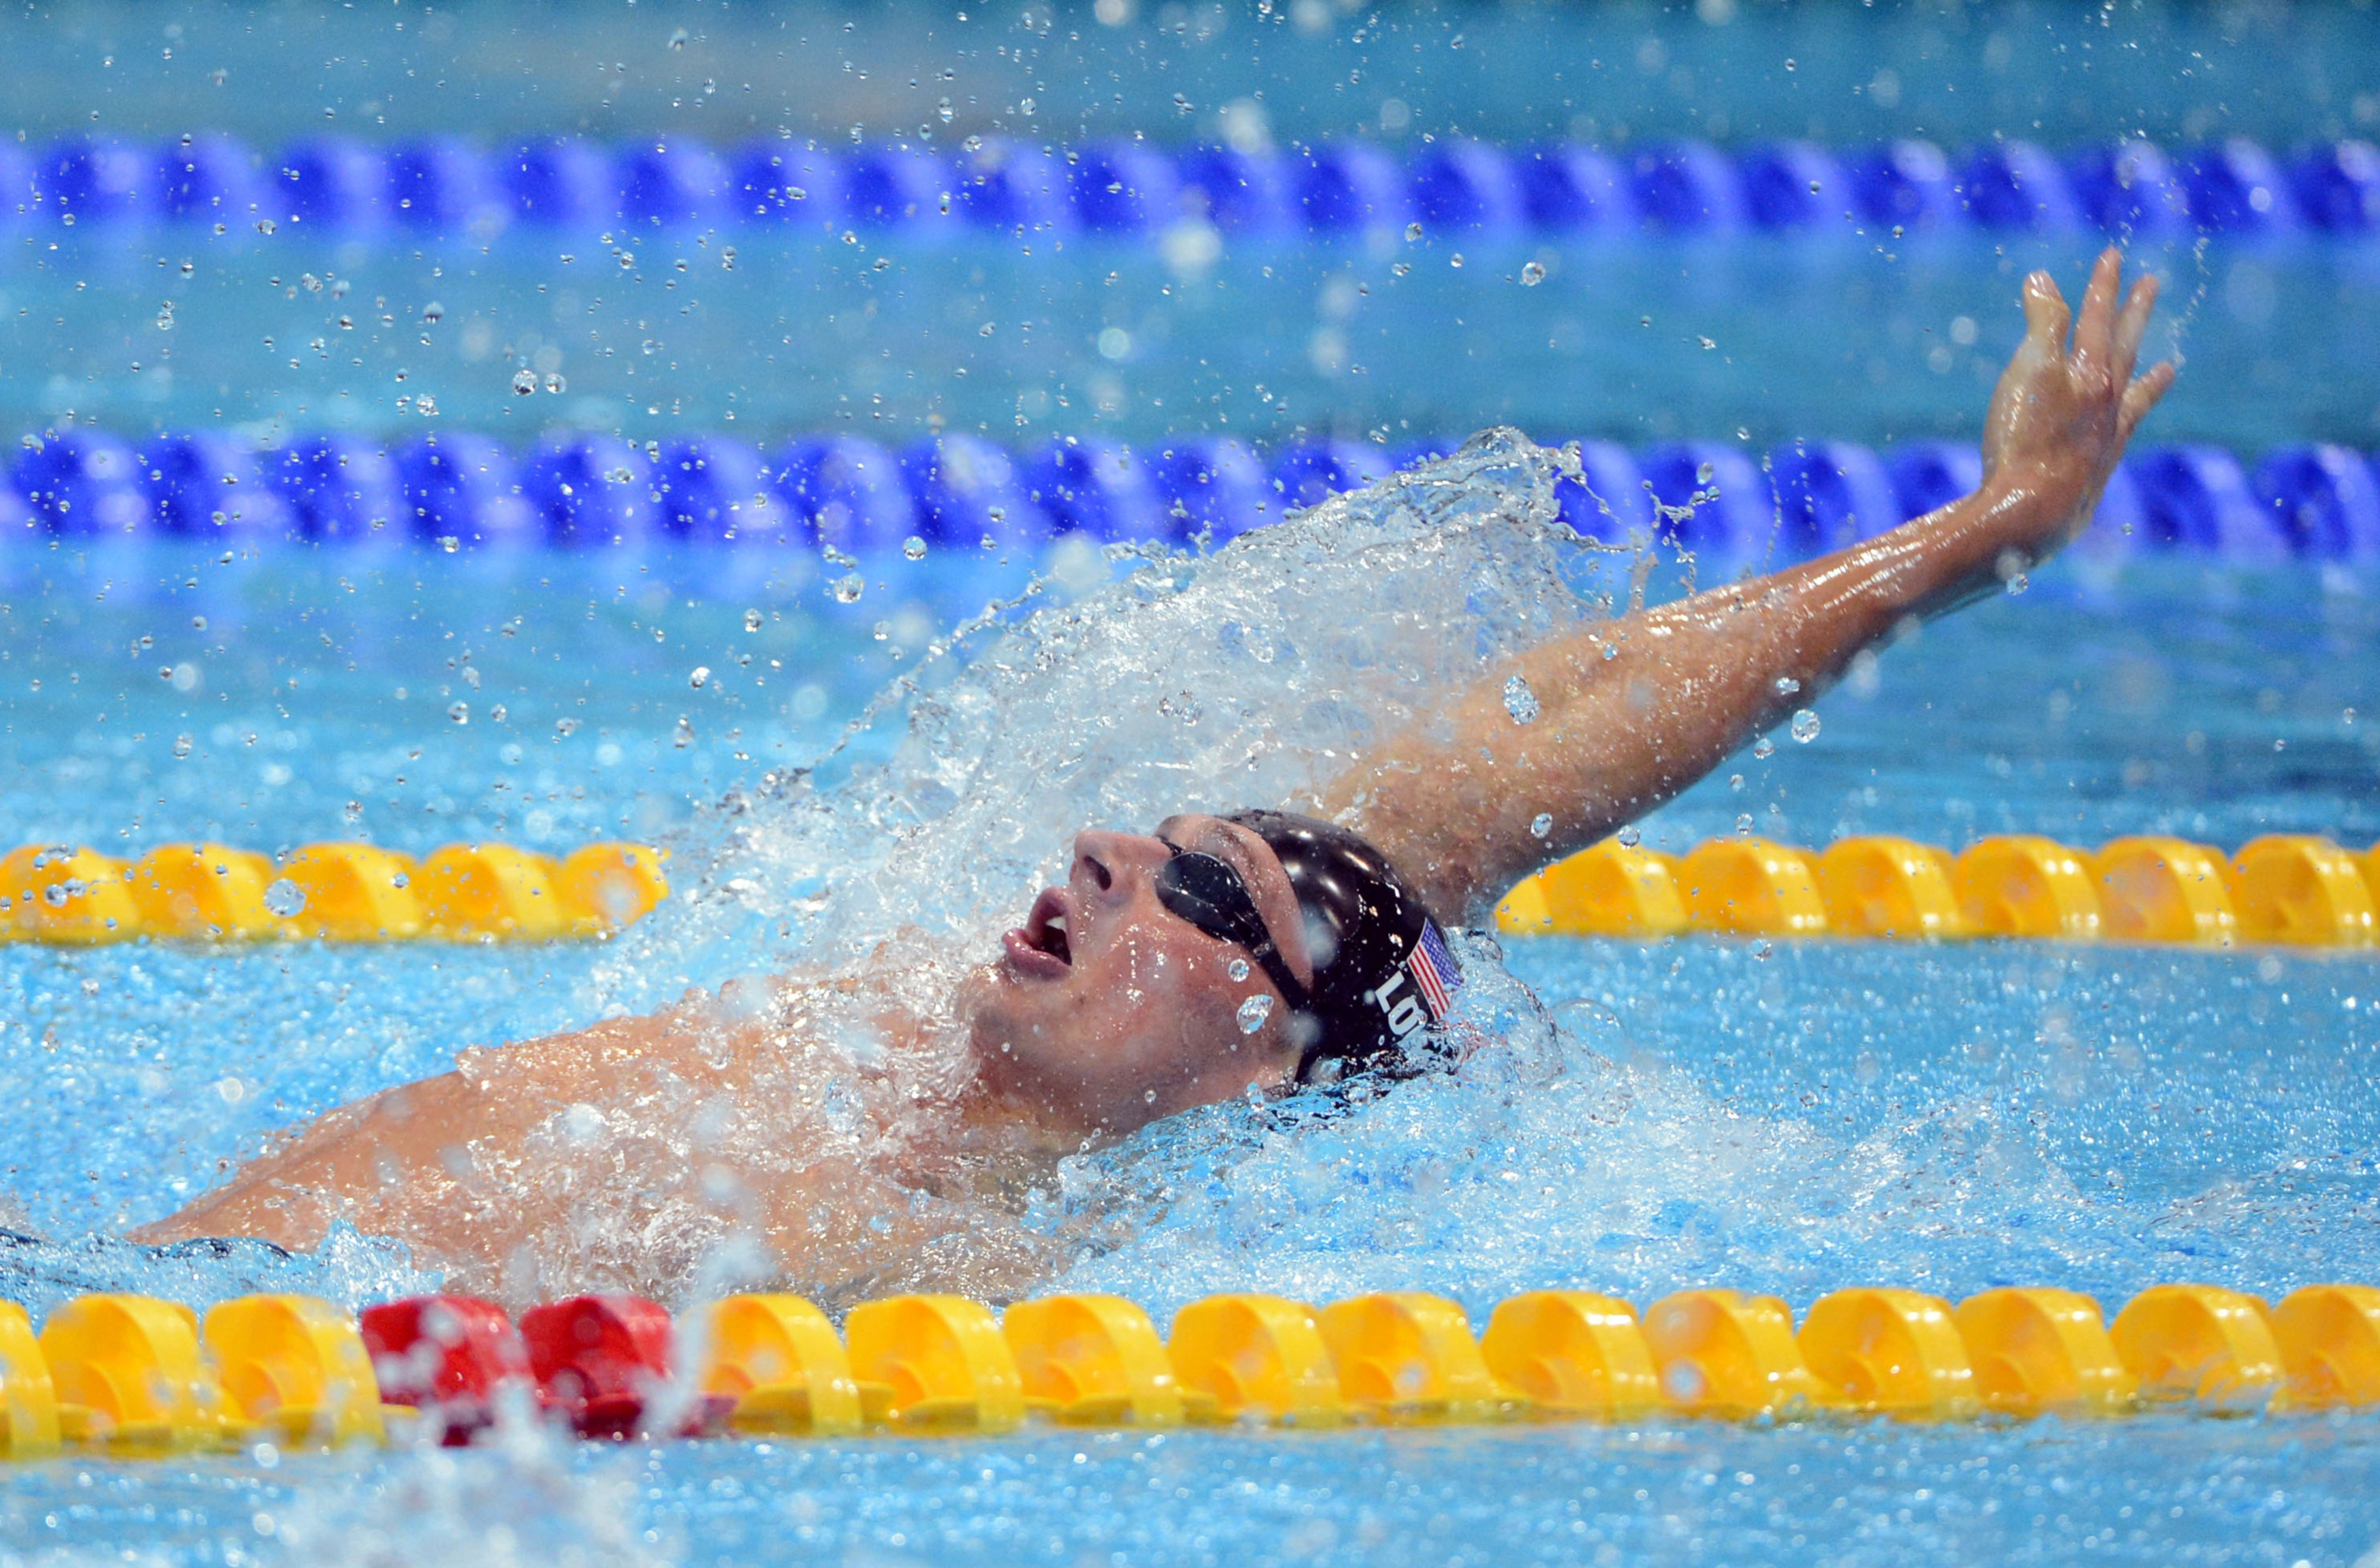 Florida's Ryan Lochte won his fourth and fifth medals today.